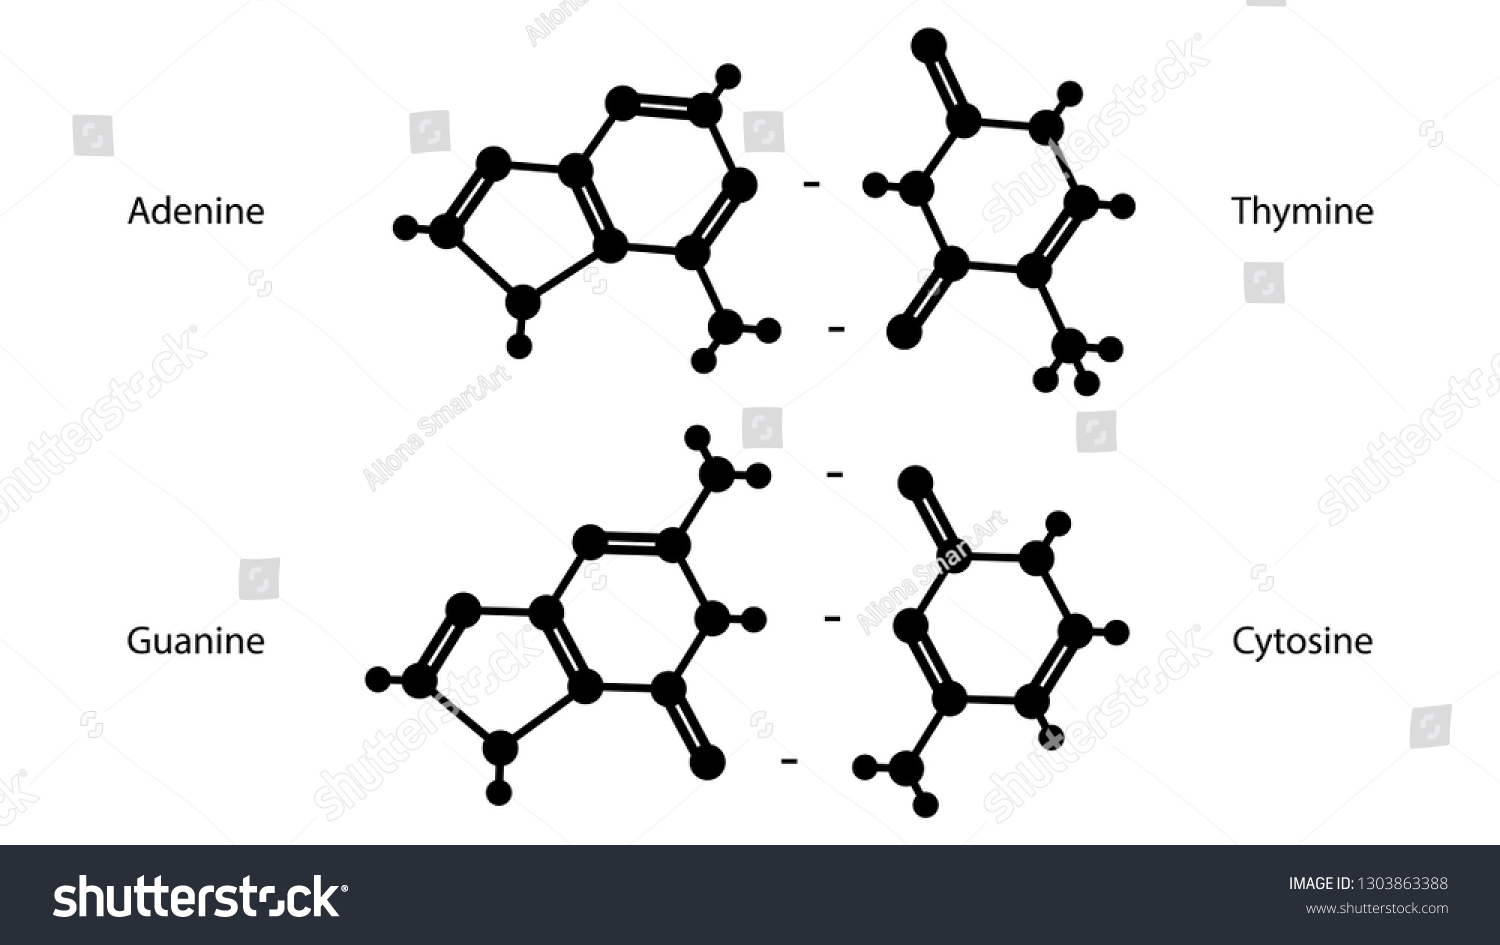 hight resolution of adenine guanine thymine cytosine molecular structure vector